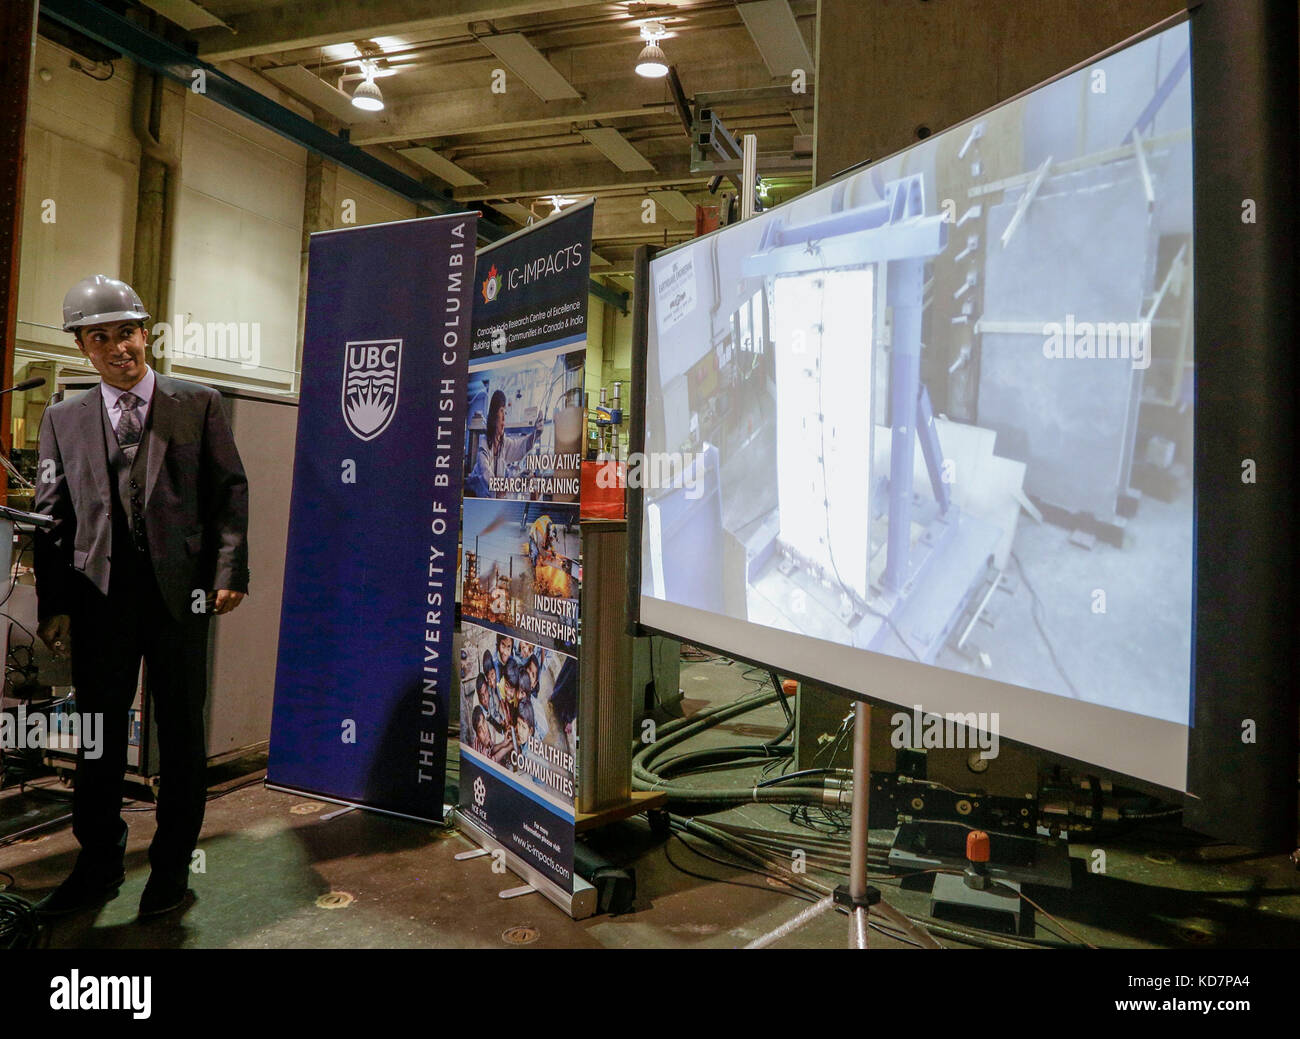 Vancouver. 10th Oct, 2017. A person watches a video showing the concrete wall tested with an earthquake simulator - Stock Image